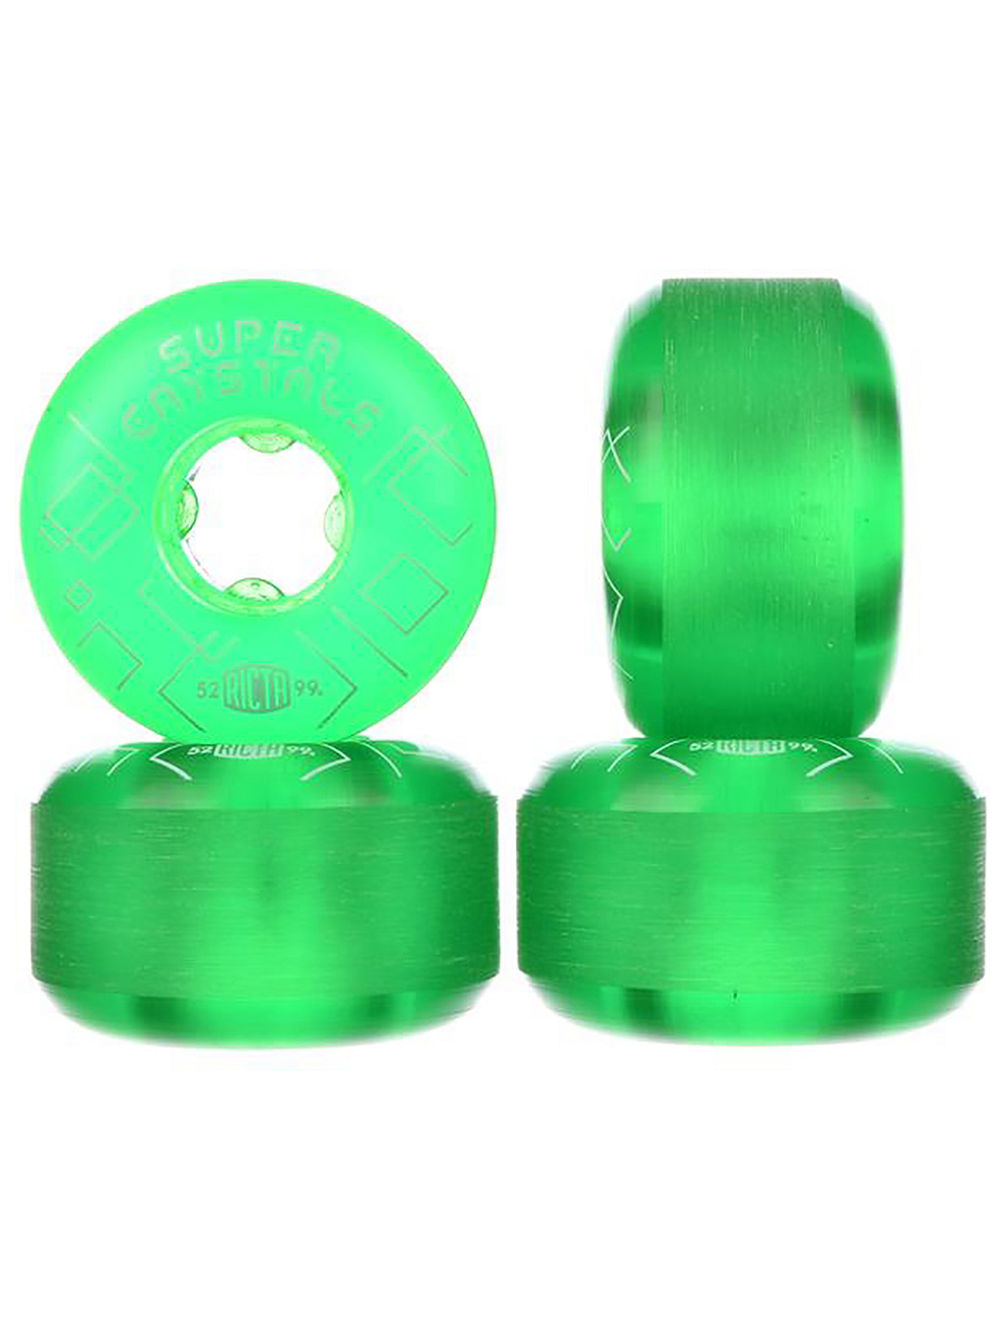 Super Crystals 99A 52mm Wheels